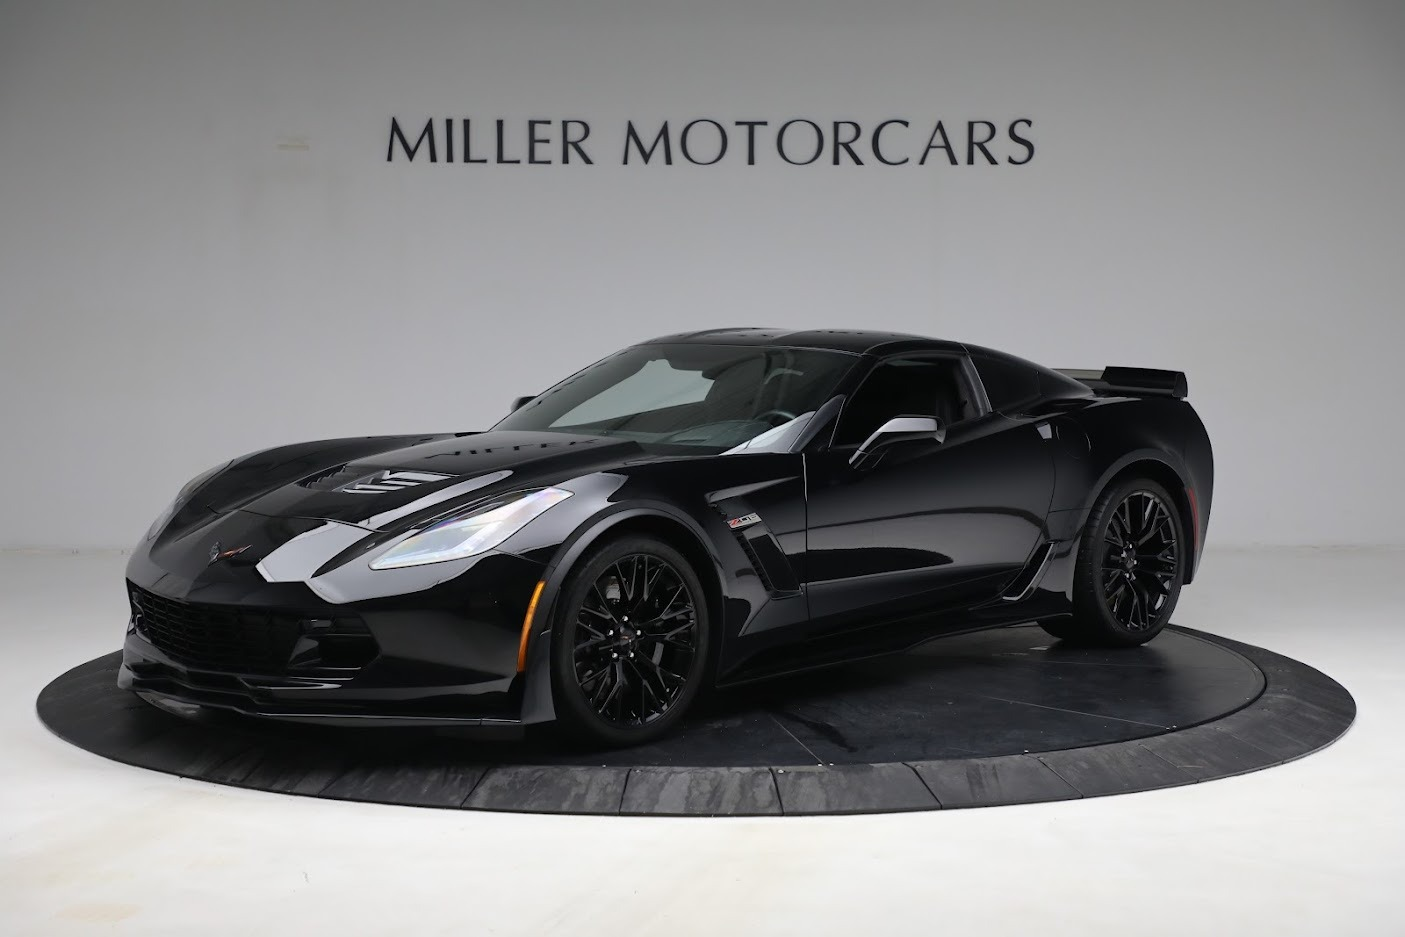 Used 2016 Chevrolet Corvette Z06 for sale $85,900 at McLaren Greenwich in Greenwich CT 06830 1